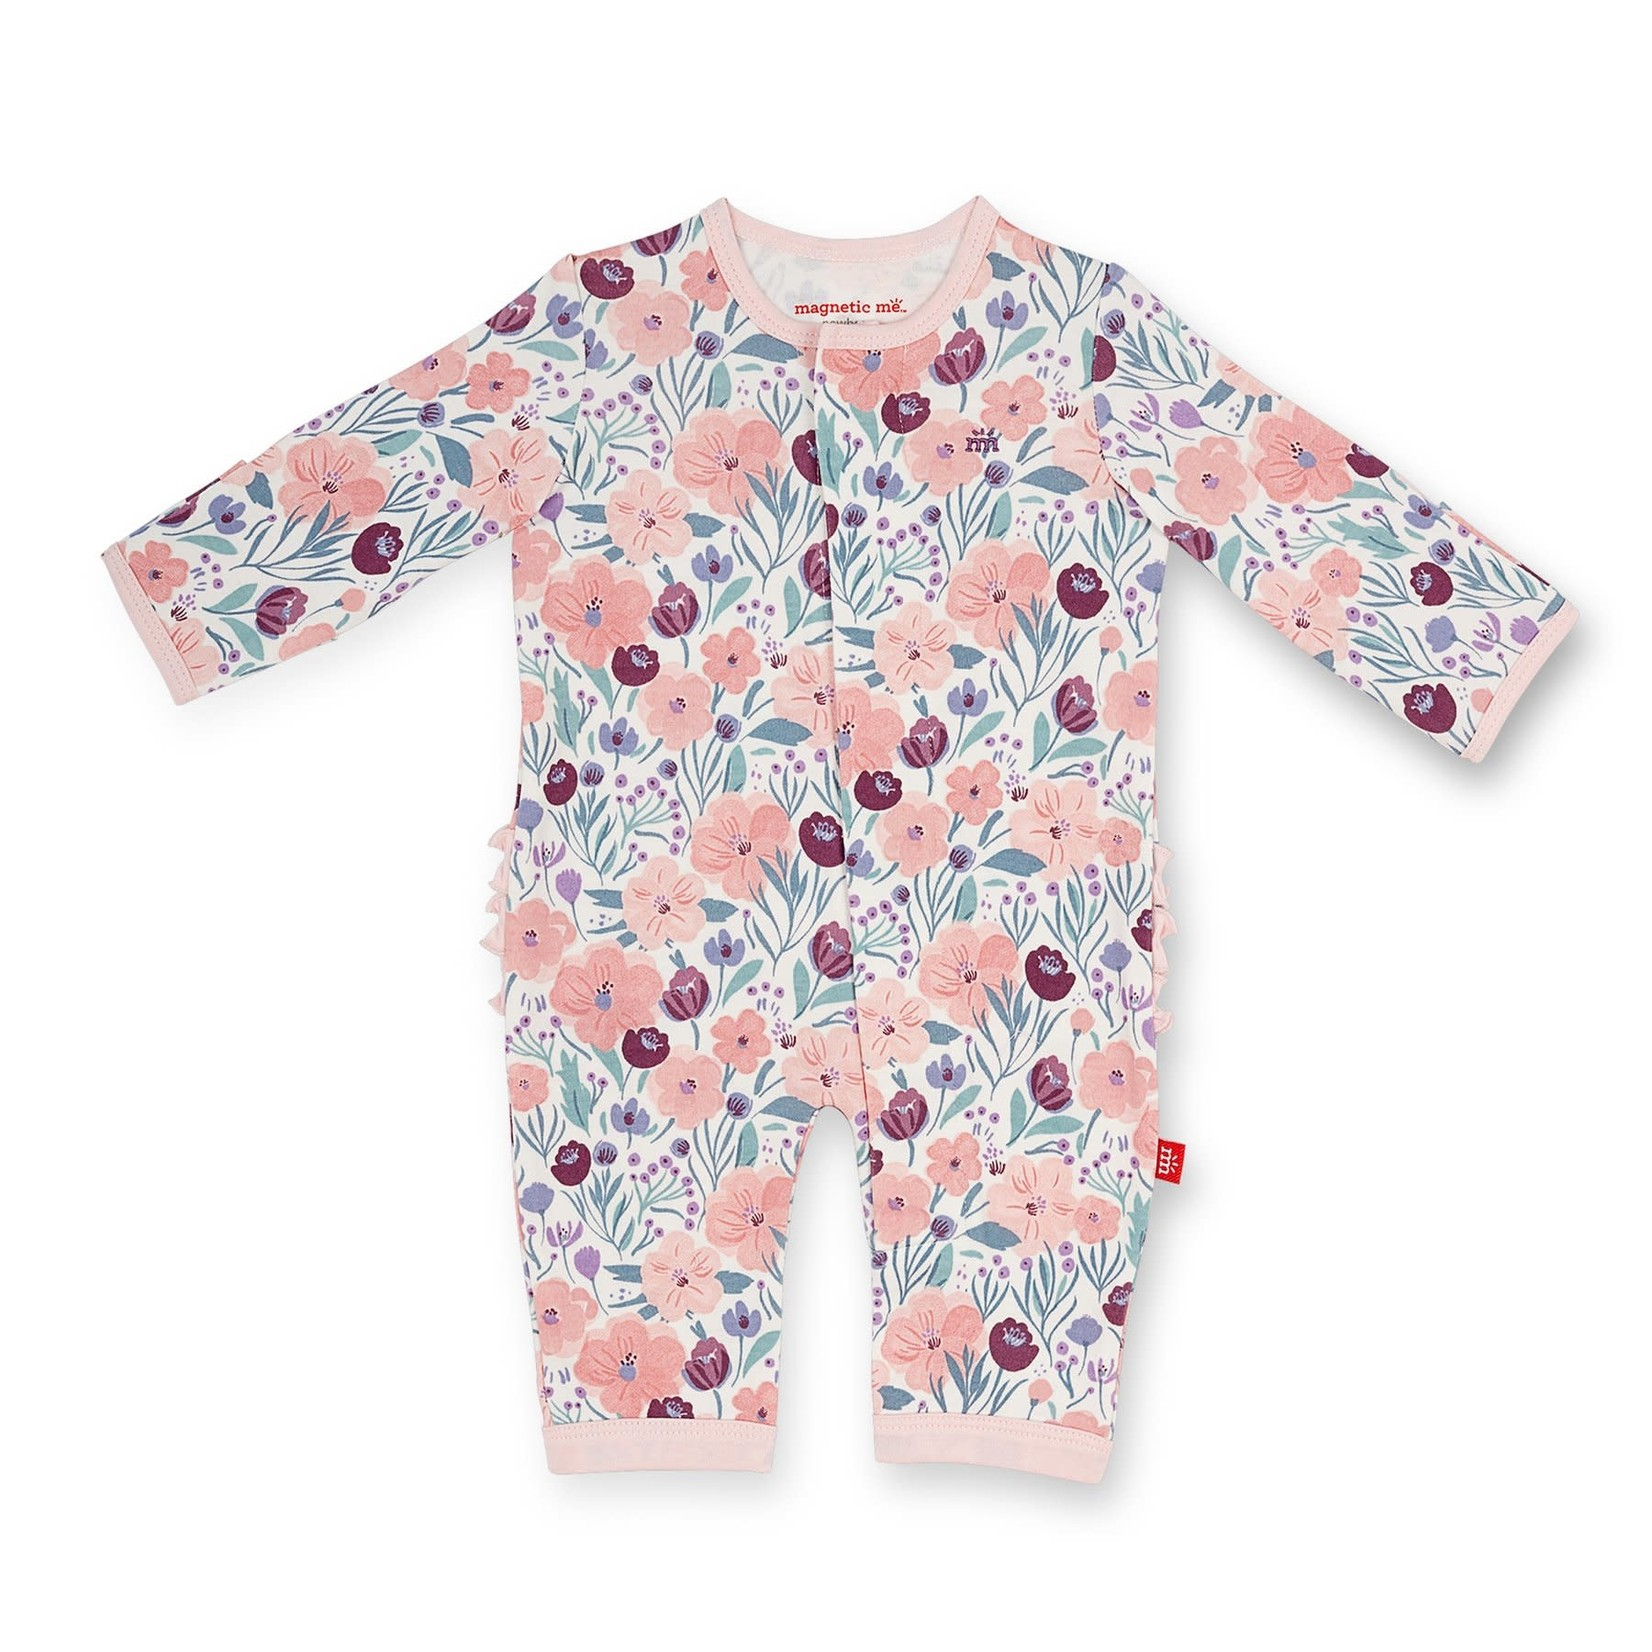 Magnetic Me Mayfair Cotton Coverall